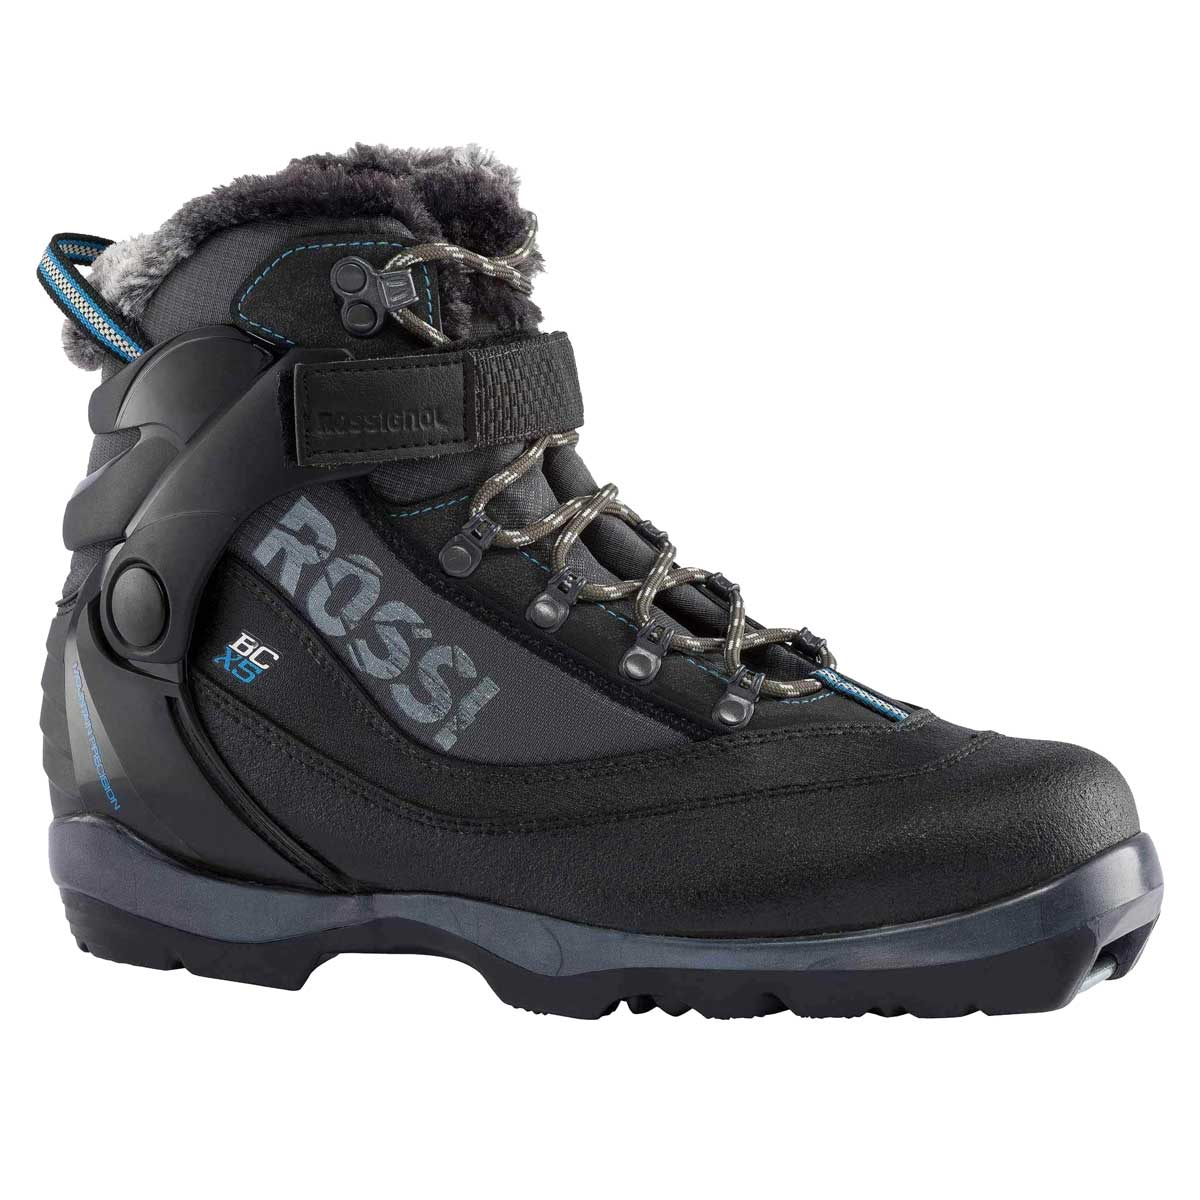 Rossignol Women's BC 5 Boot in Black